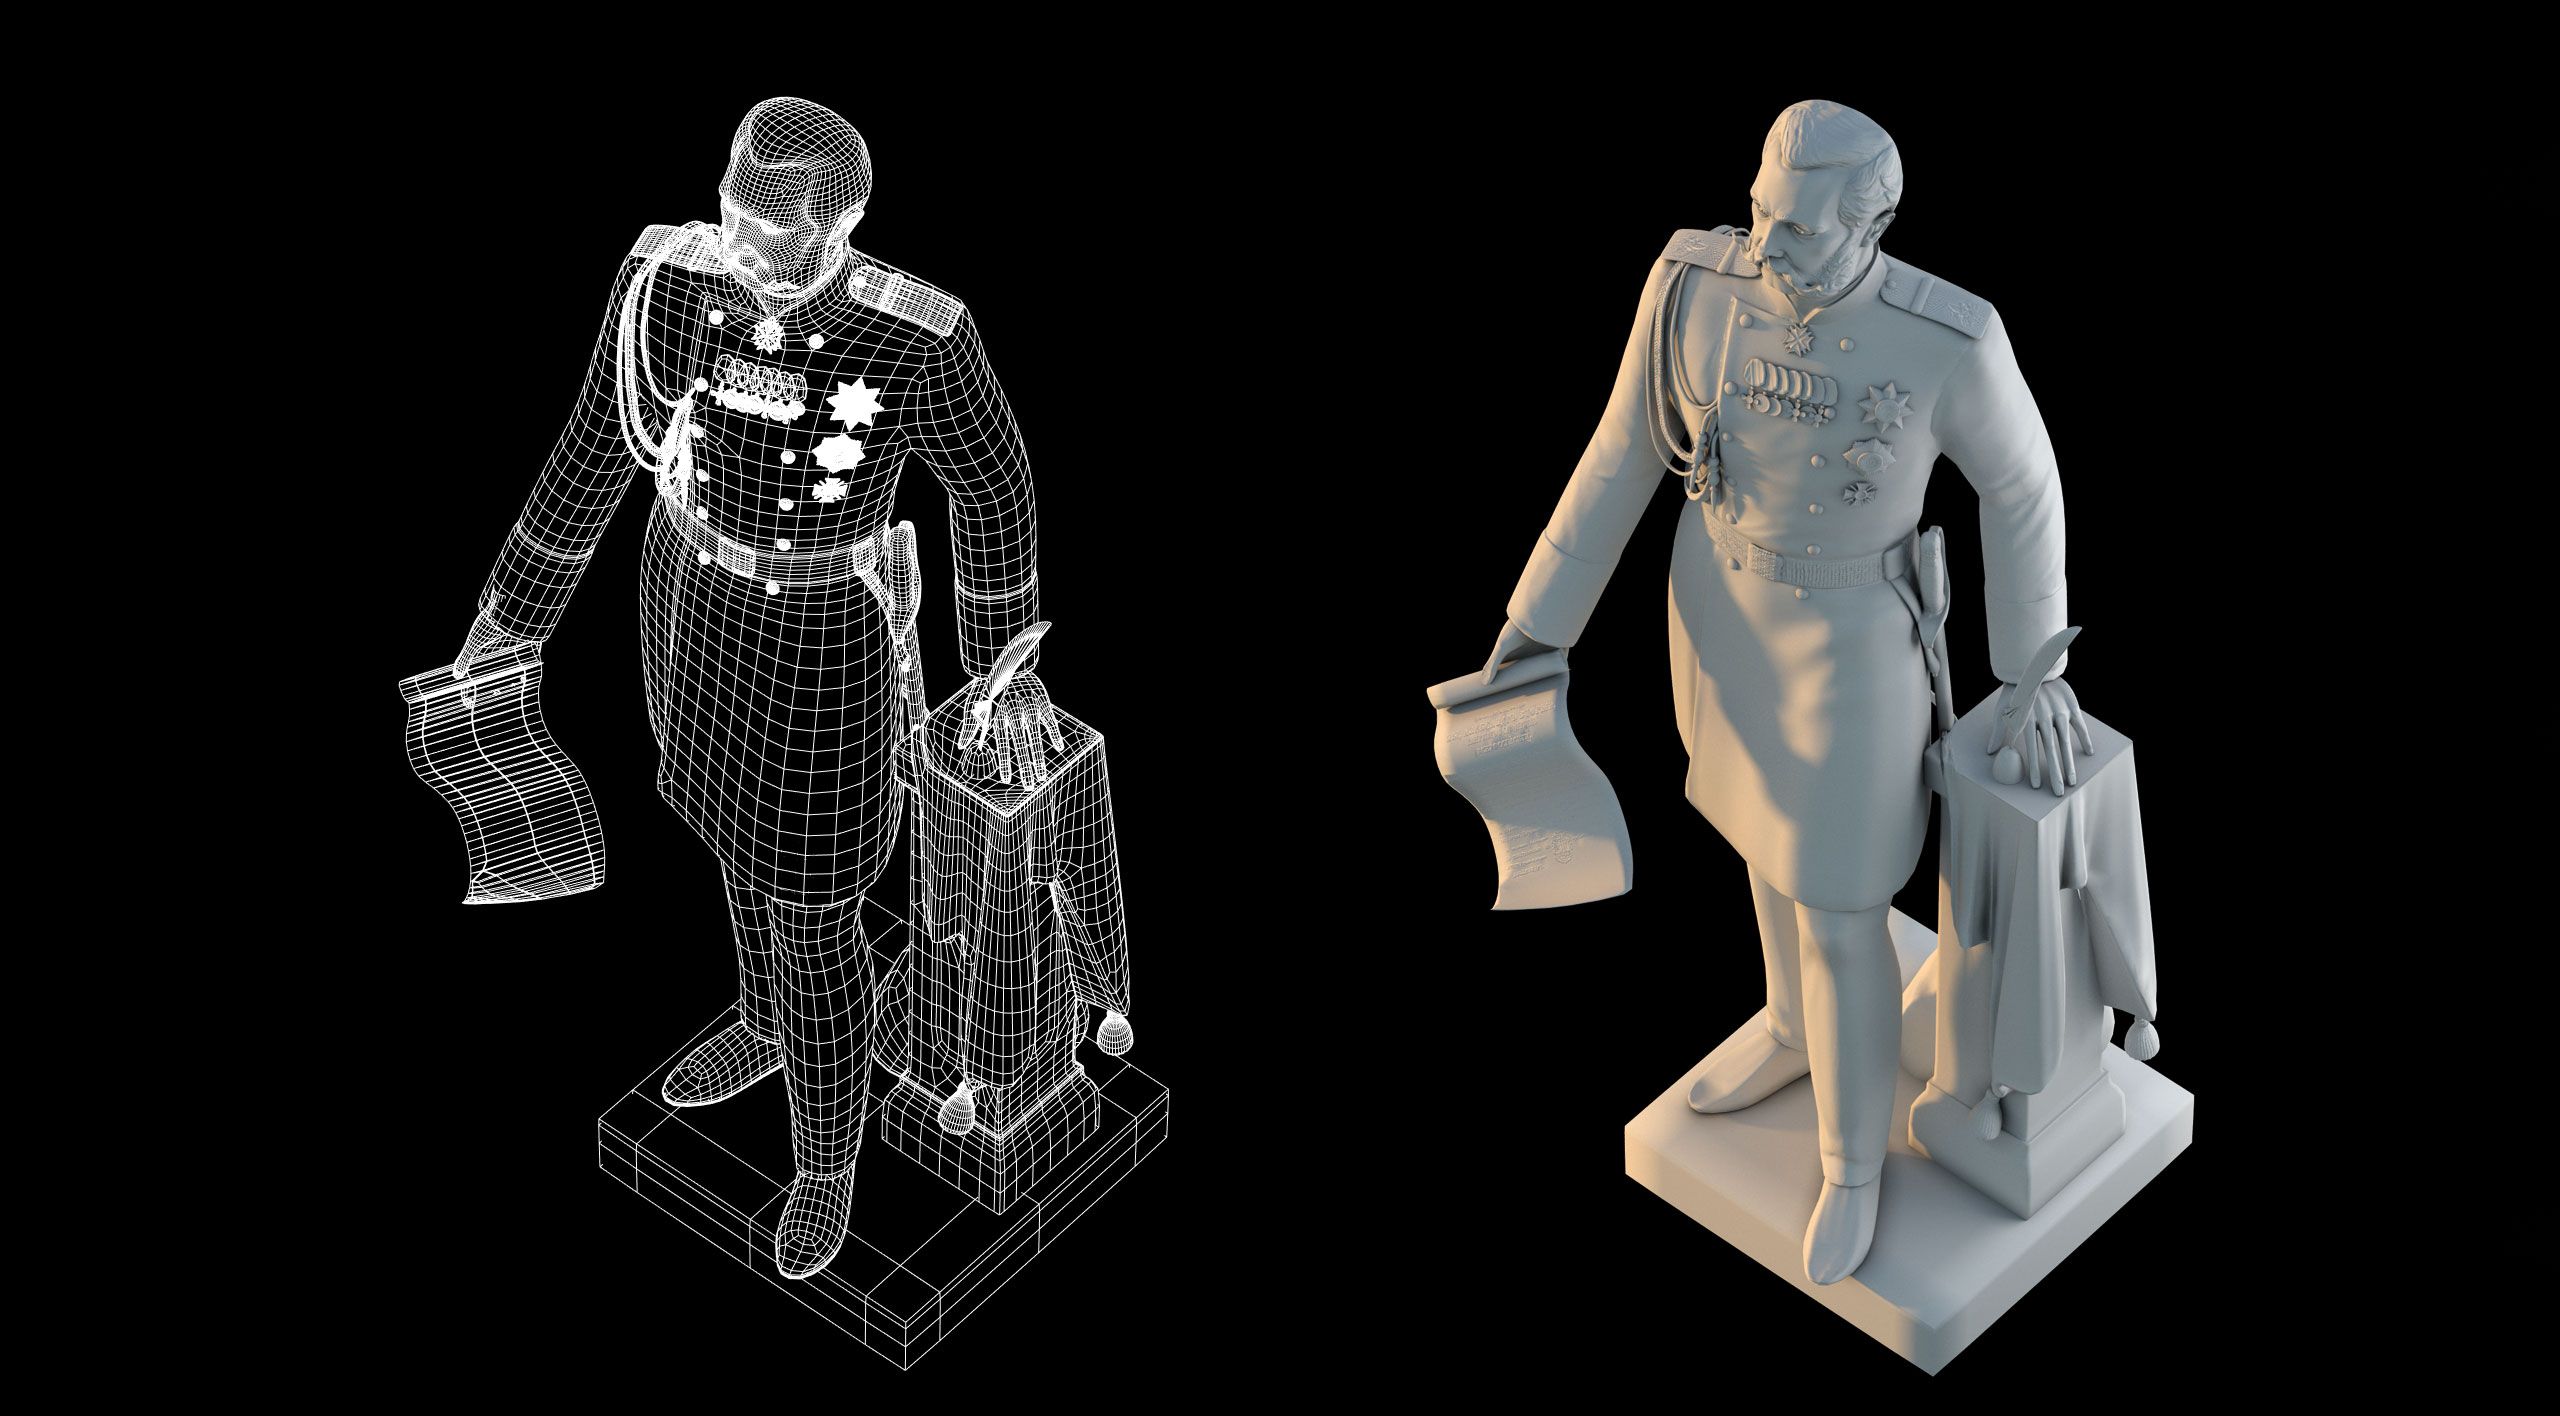 Monument to Emperor Alexander 3d model and its mesh